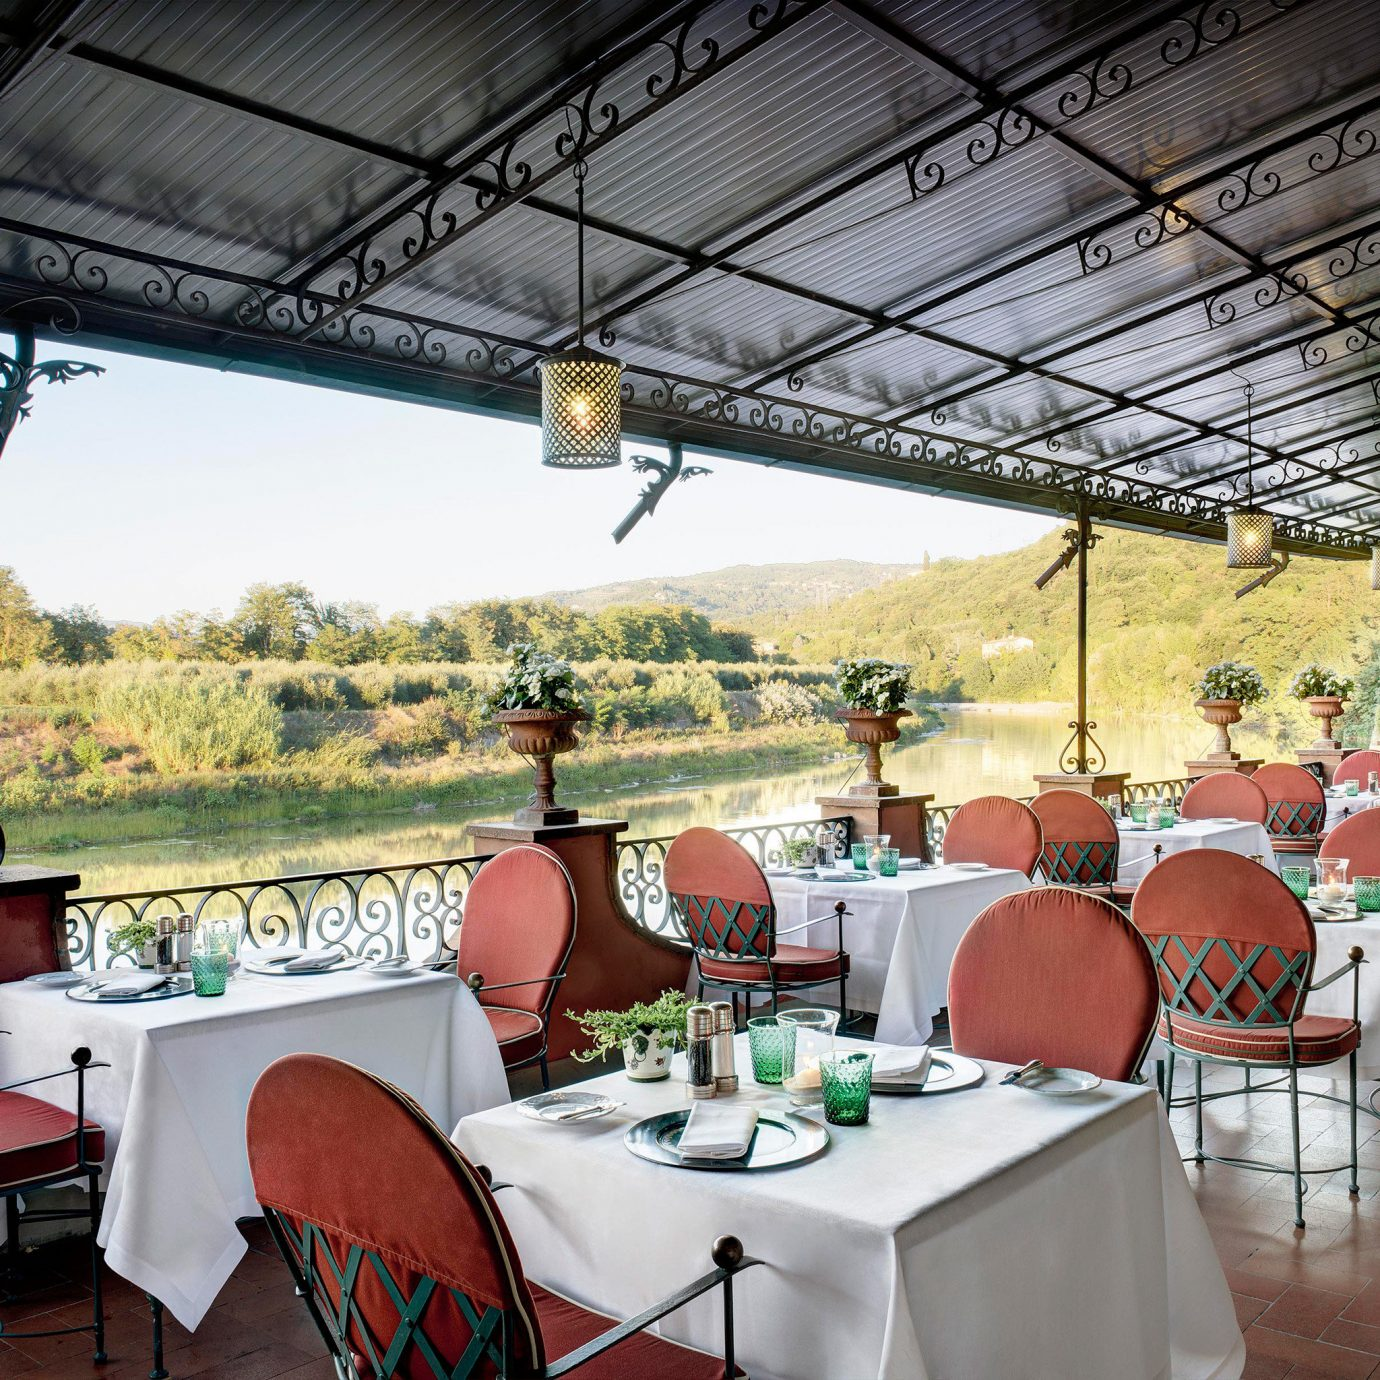 Country Dining Drink Eat Historic Patio River Scenic views Waterfront chair restaurant